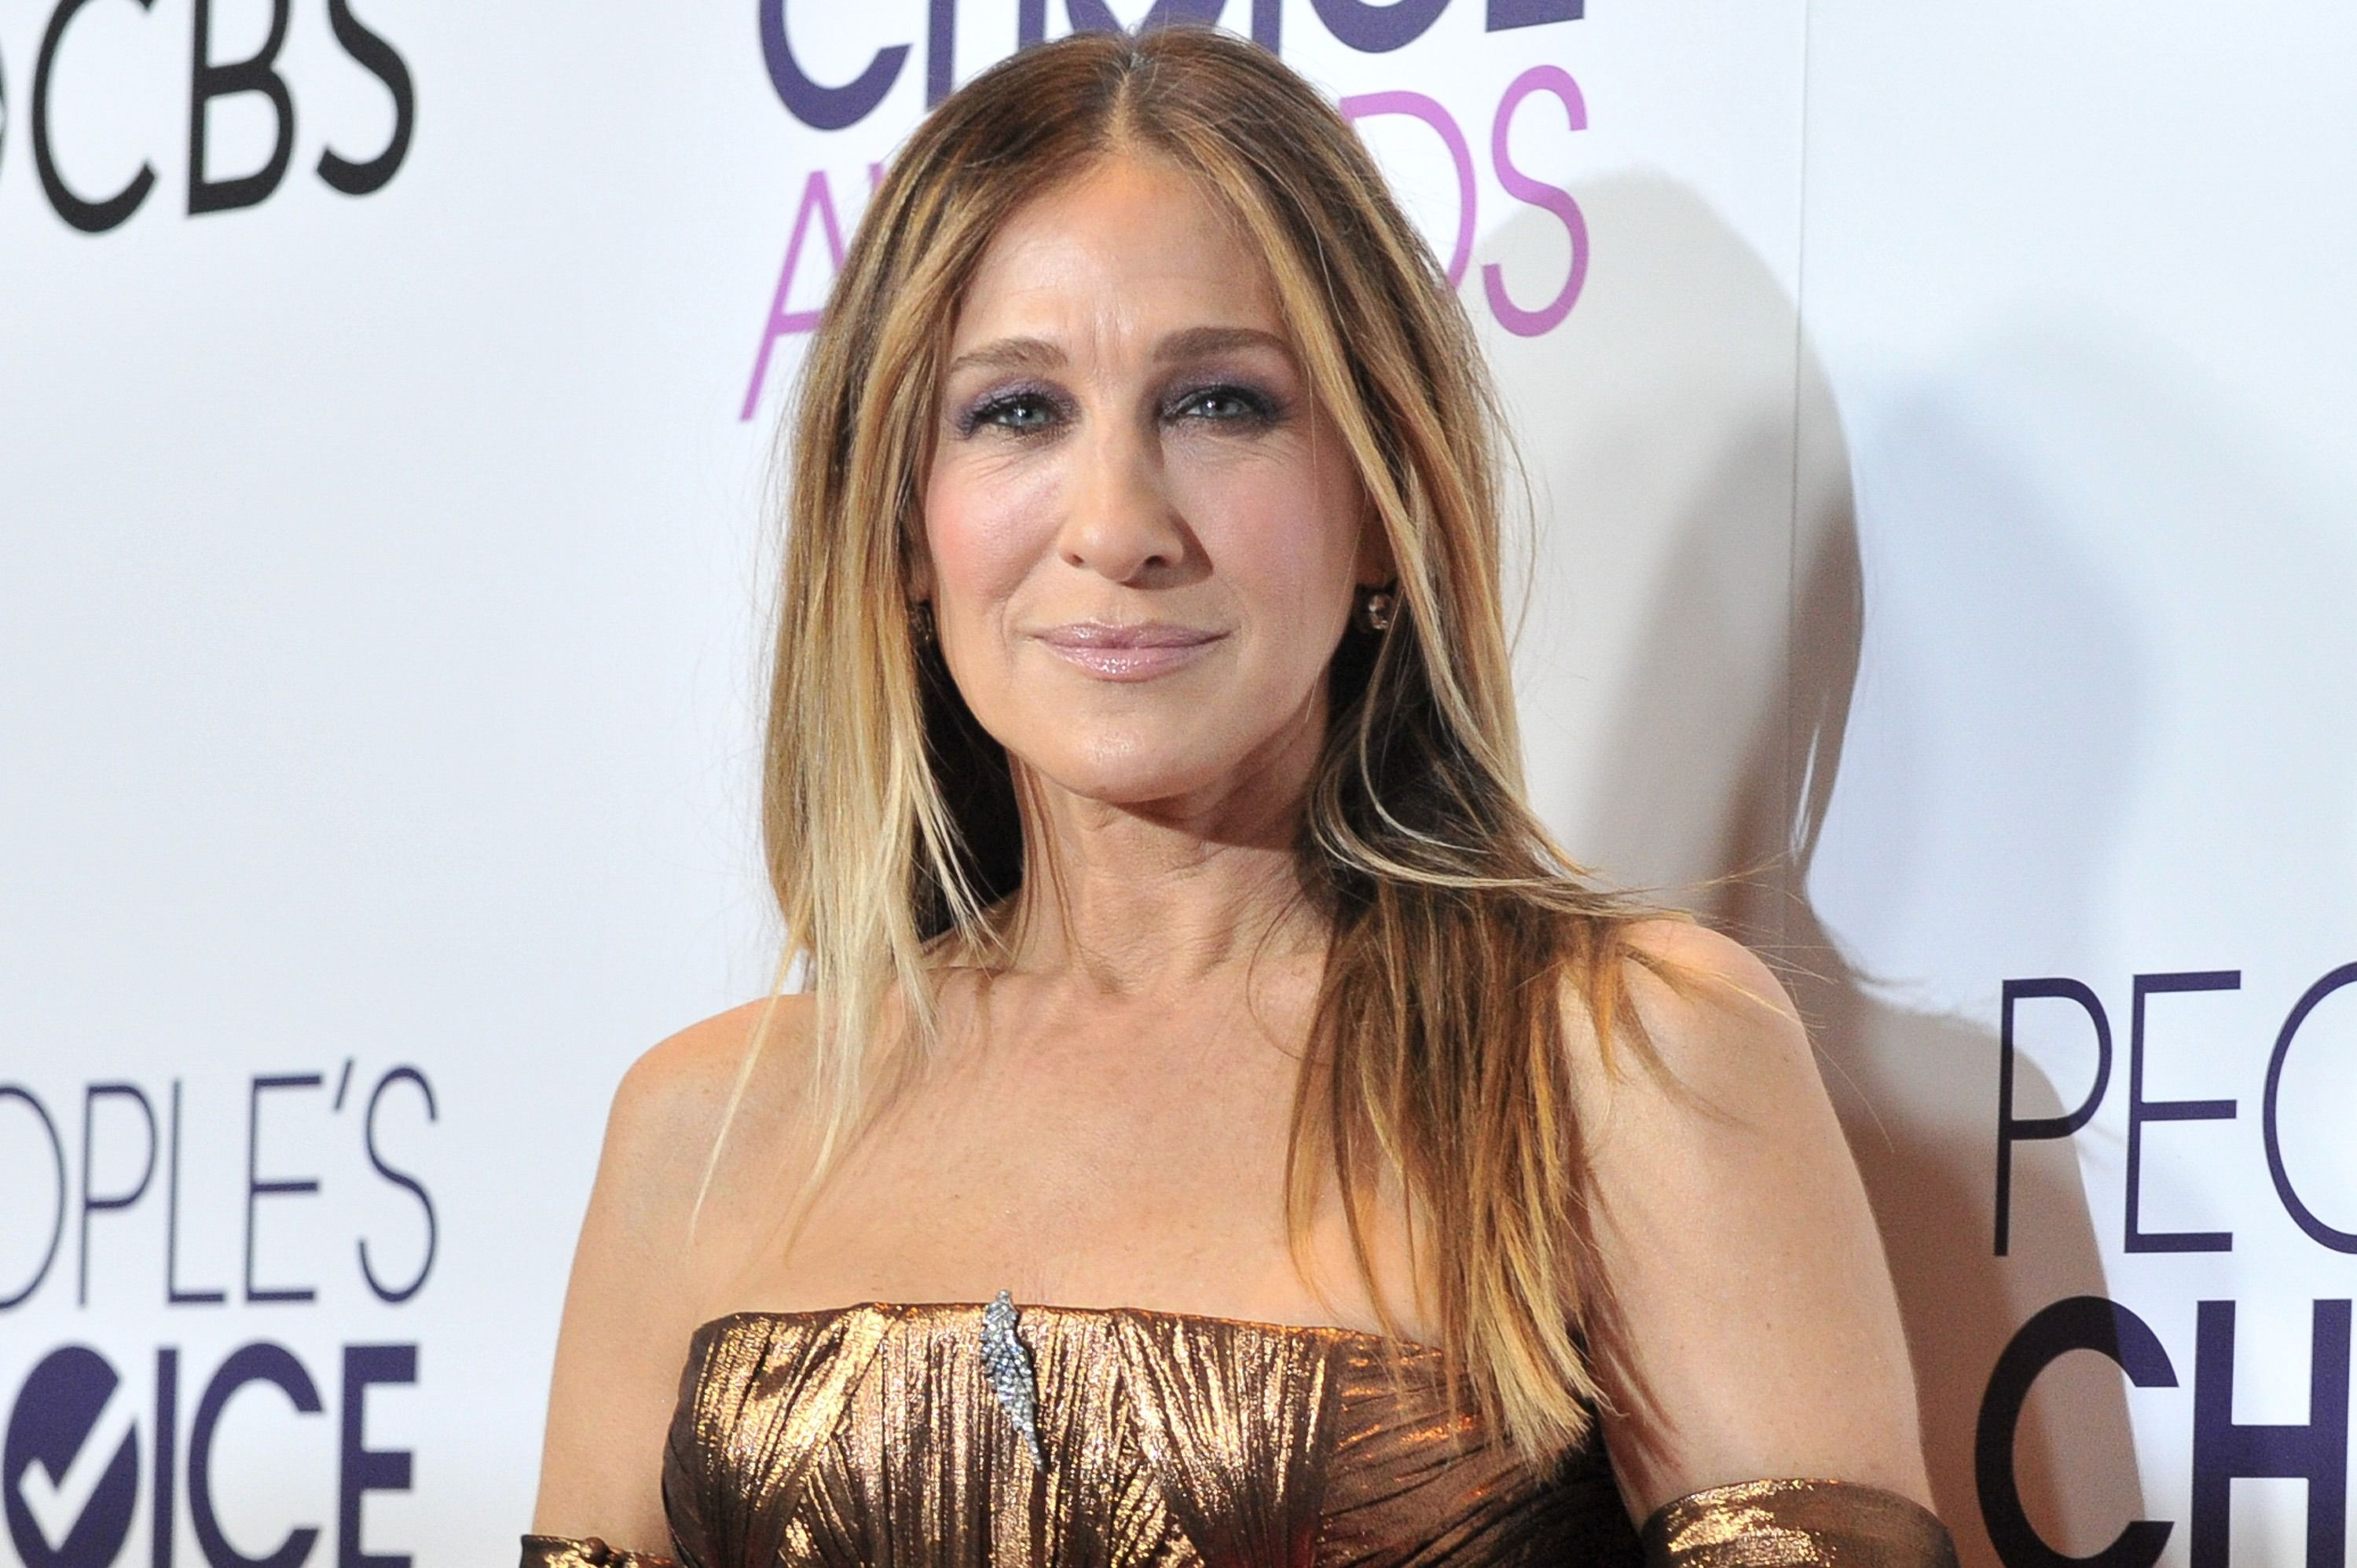 Sarah Jessica Parker is leading guided tours of N.Y.C